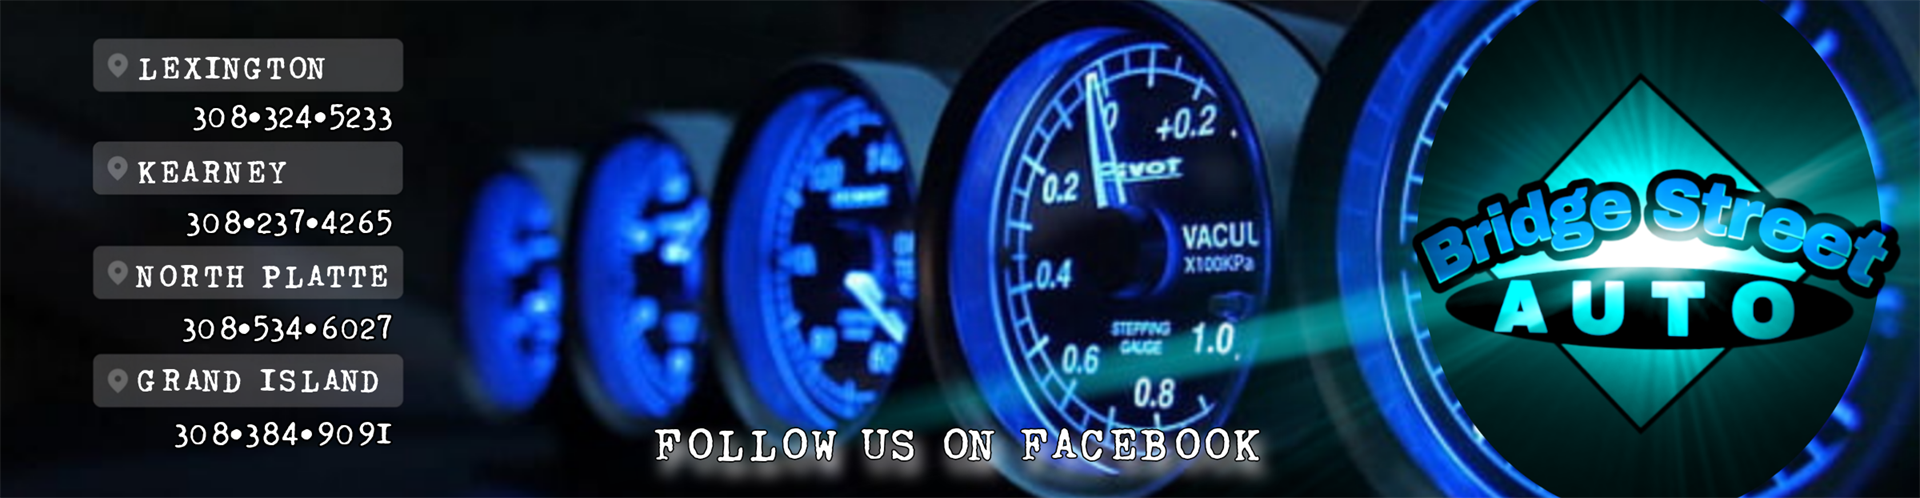 Bridge Street Auto Central Nebraska's Largest Buy Here Pay Here U